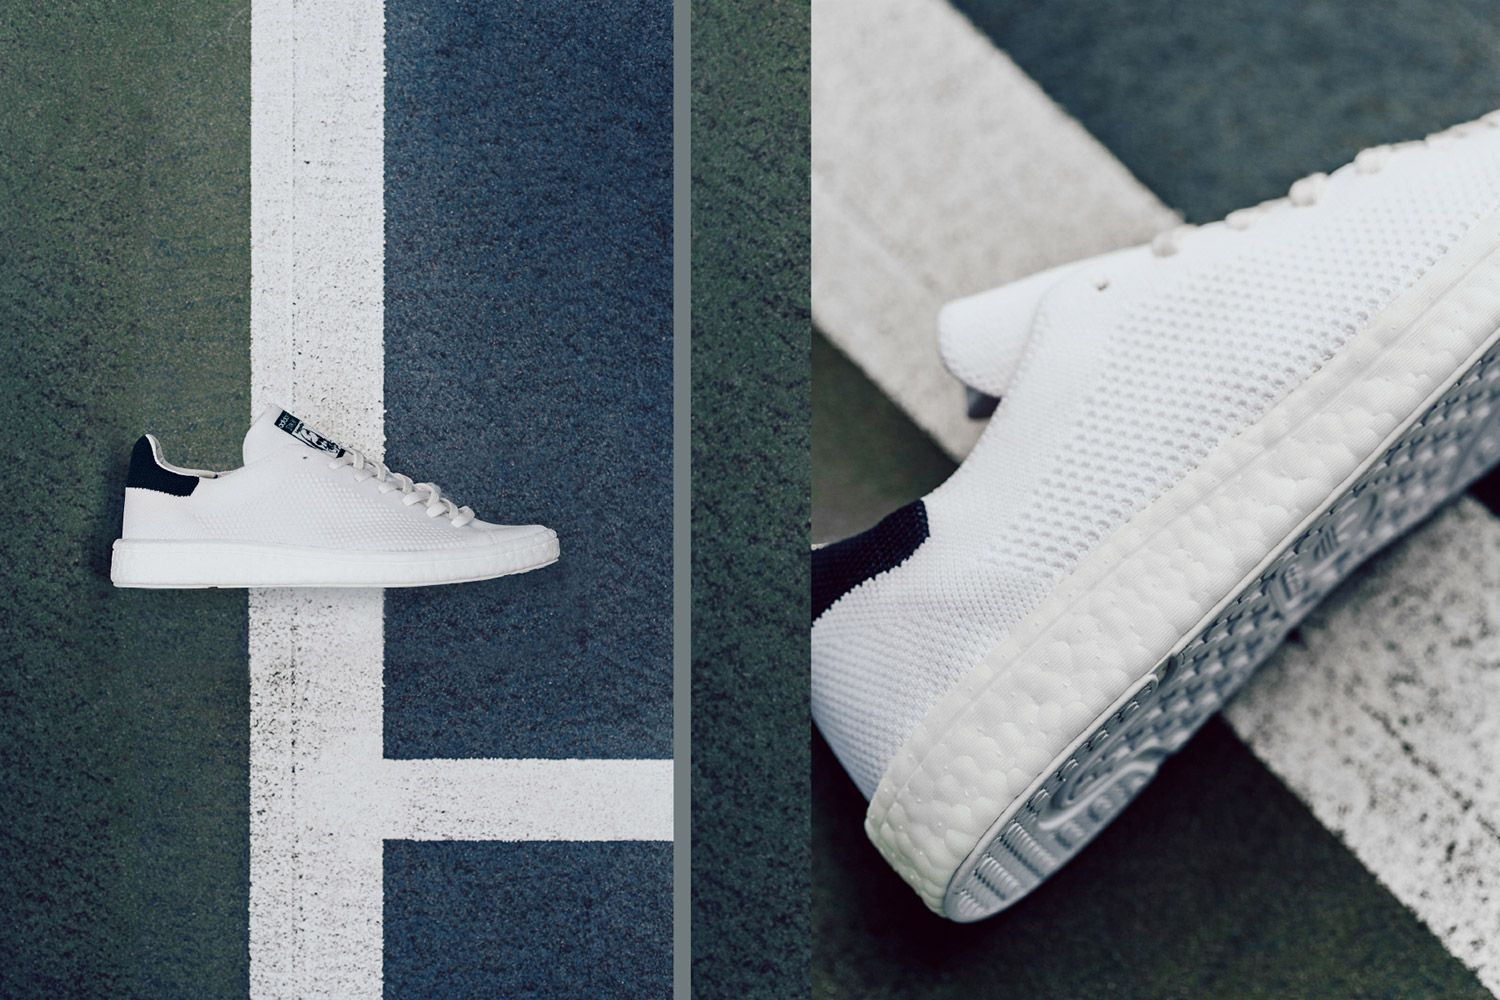 dcf9f401a20 adidas has dropped off a revamped take on the iconic Stan Smith with the Stan  Smith Primeknit Boost.